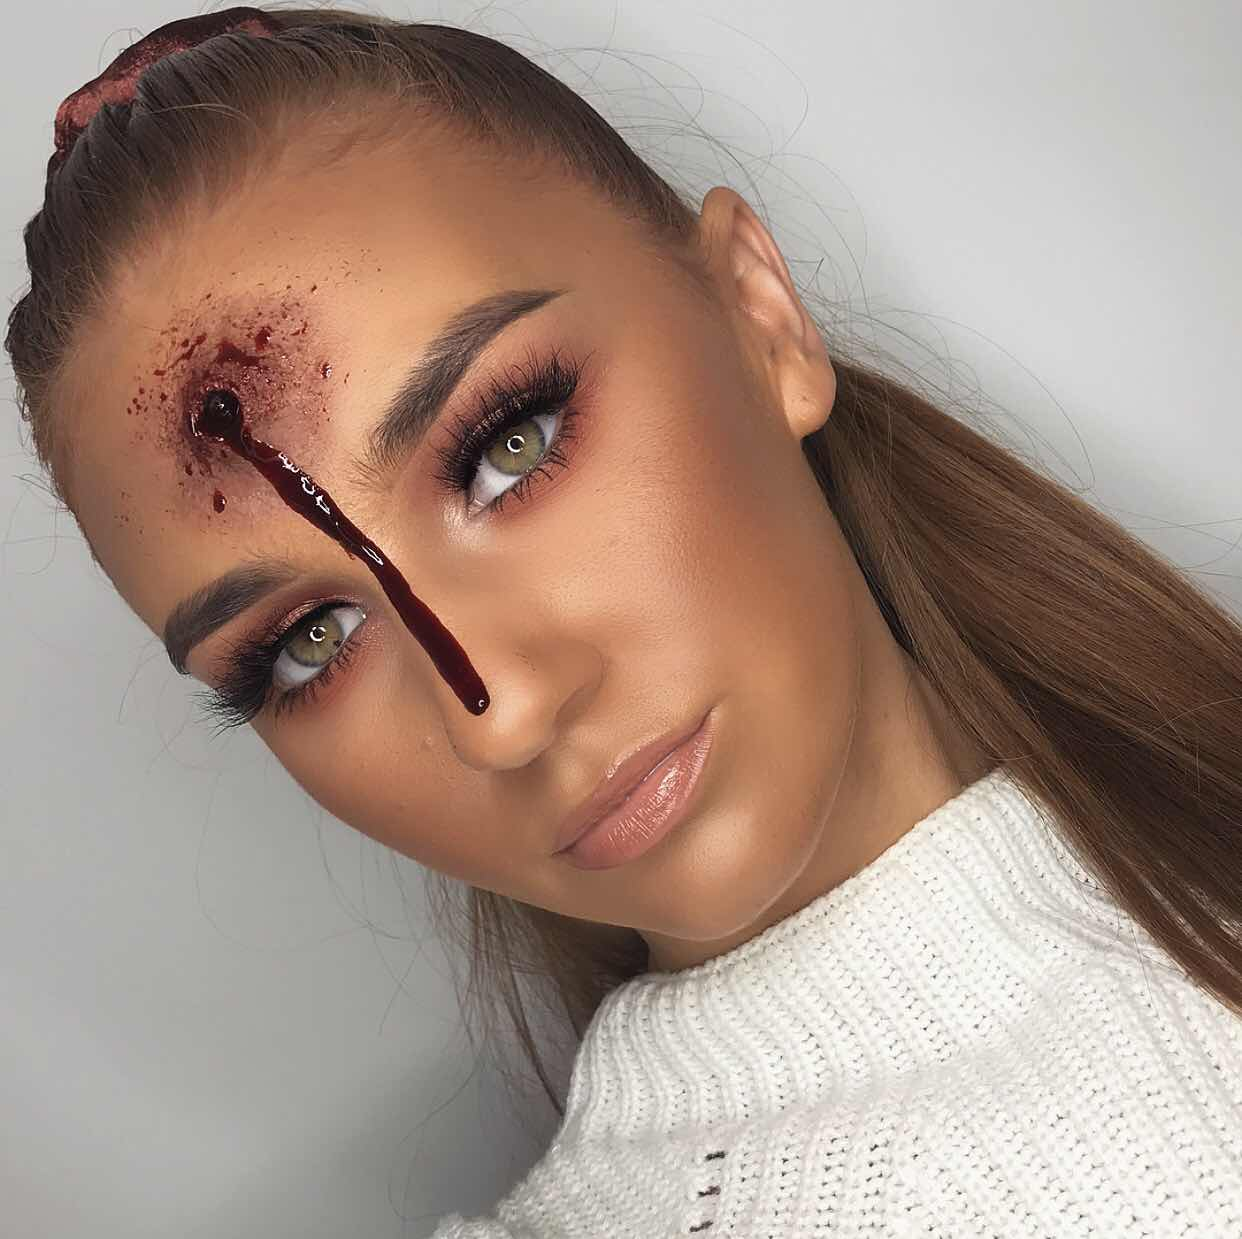 Easy Sfx Makeup Bullet Hole Wound